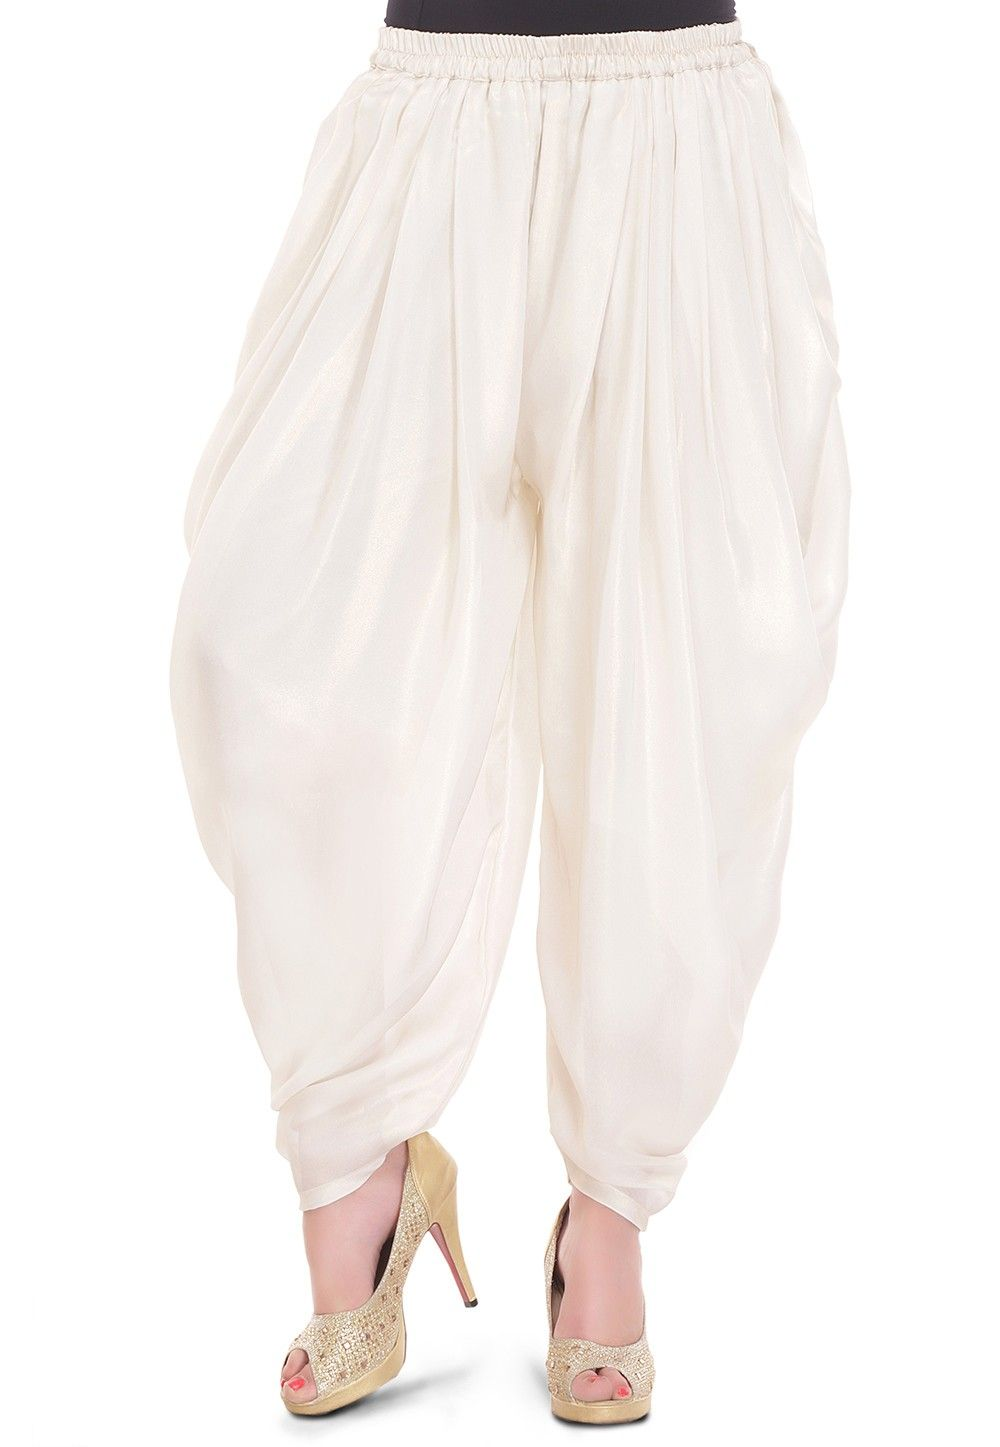 Plain Georgette Shimmer Elasticated Cowl Pant in Off White